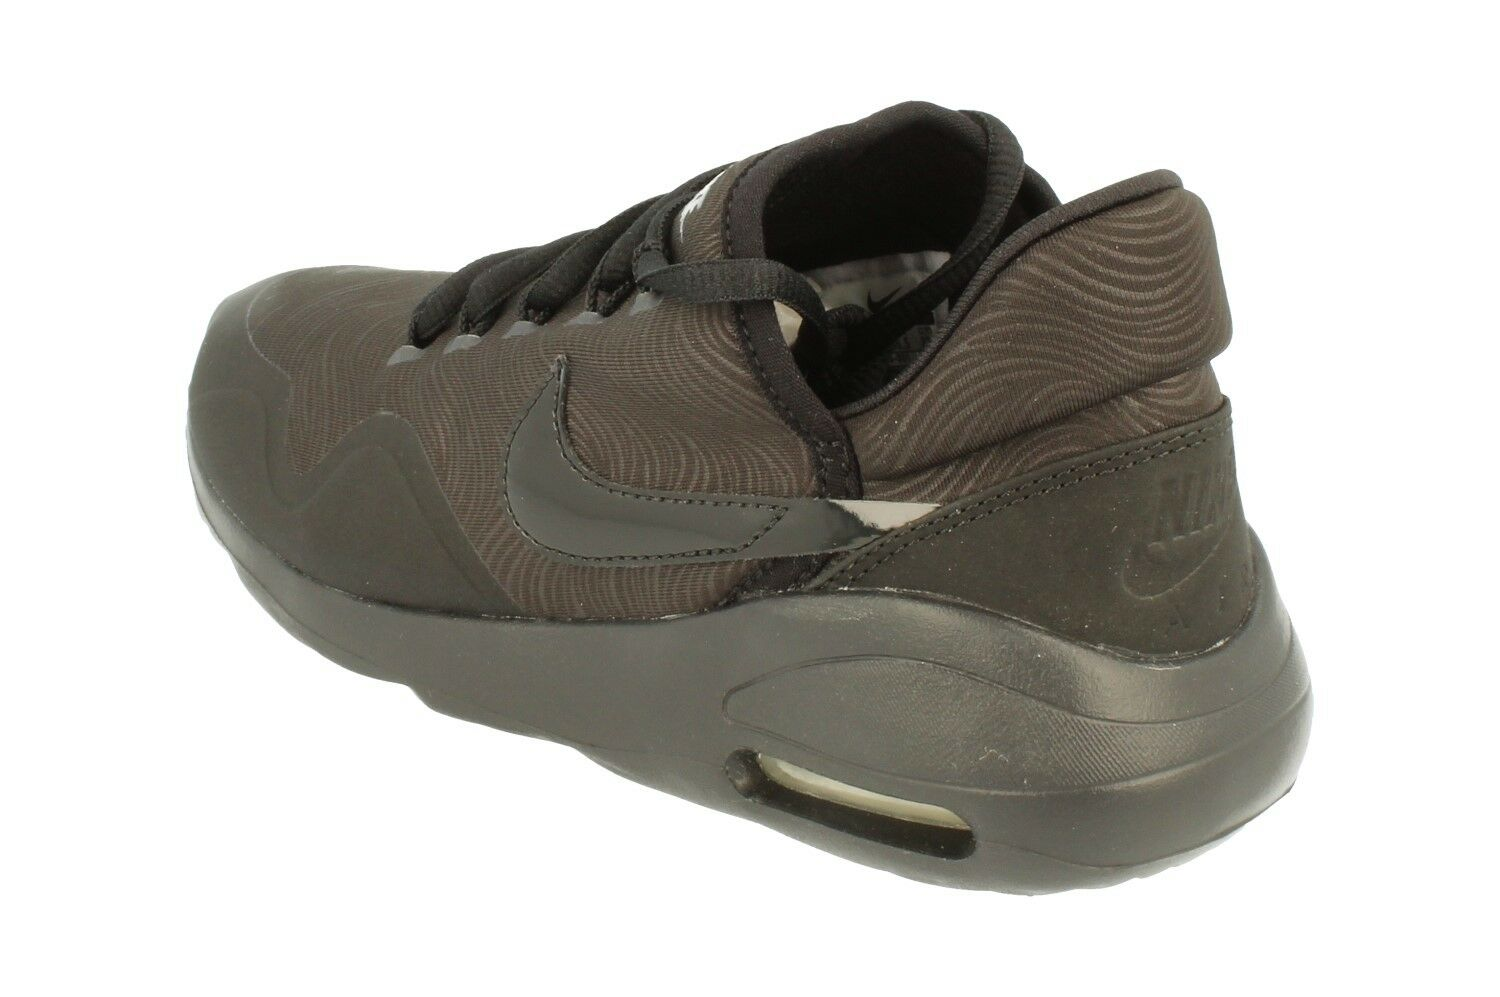 Nike Nike Nike Womens Air Max Sasha Running Trainers 916785 Sneakers shoes 001 56cfa5